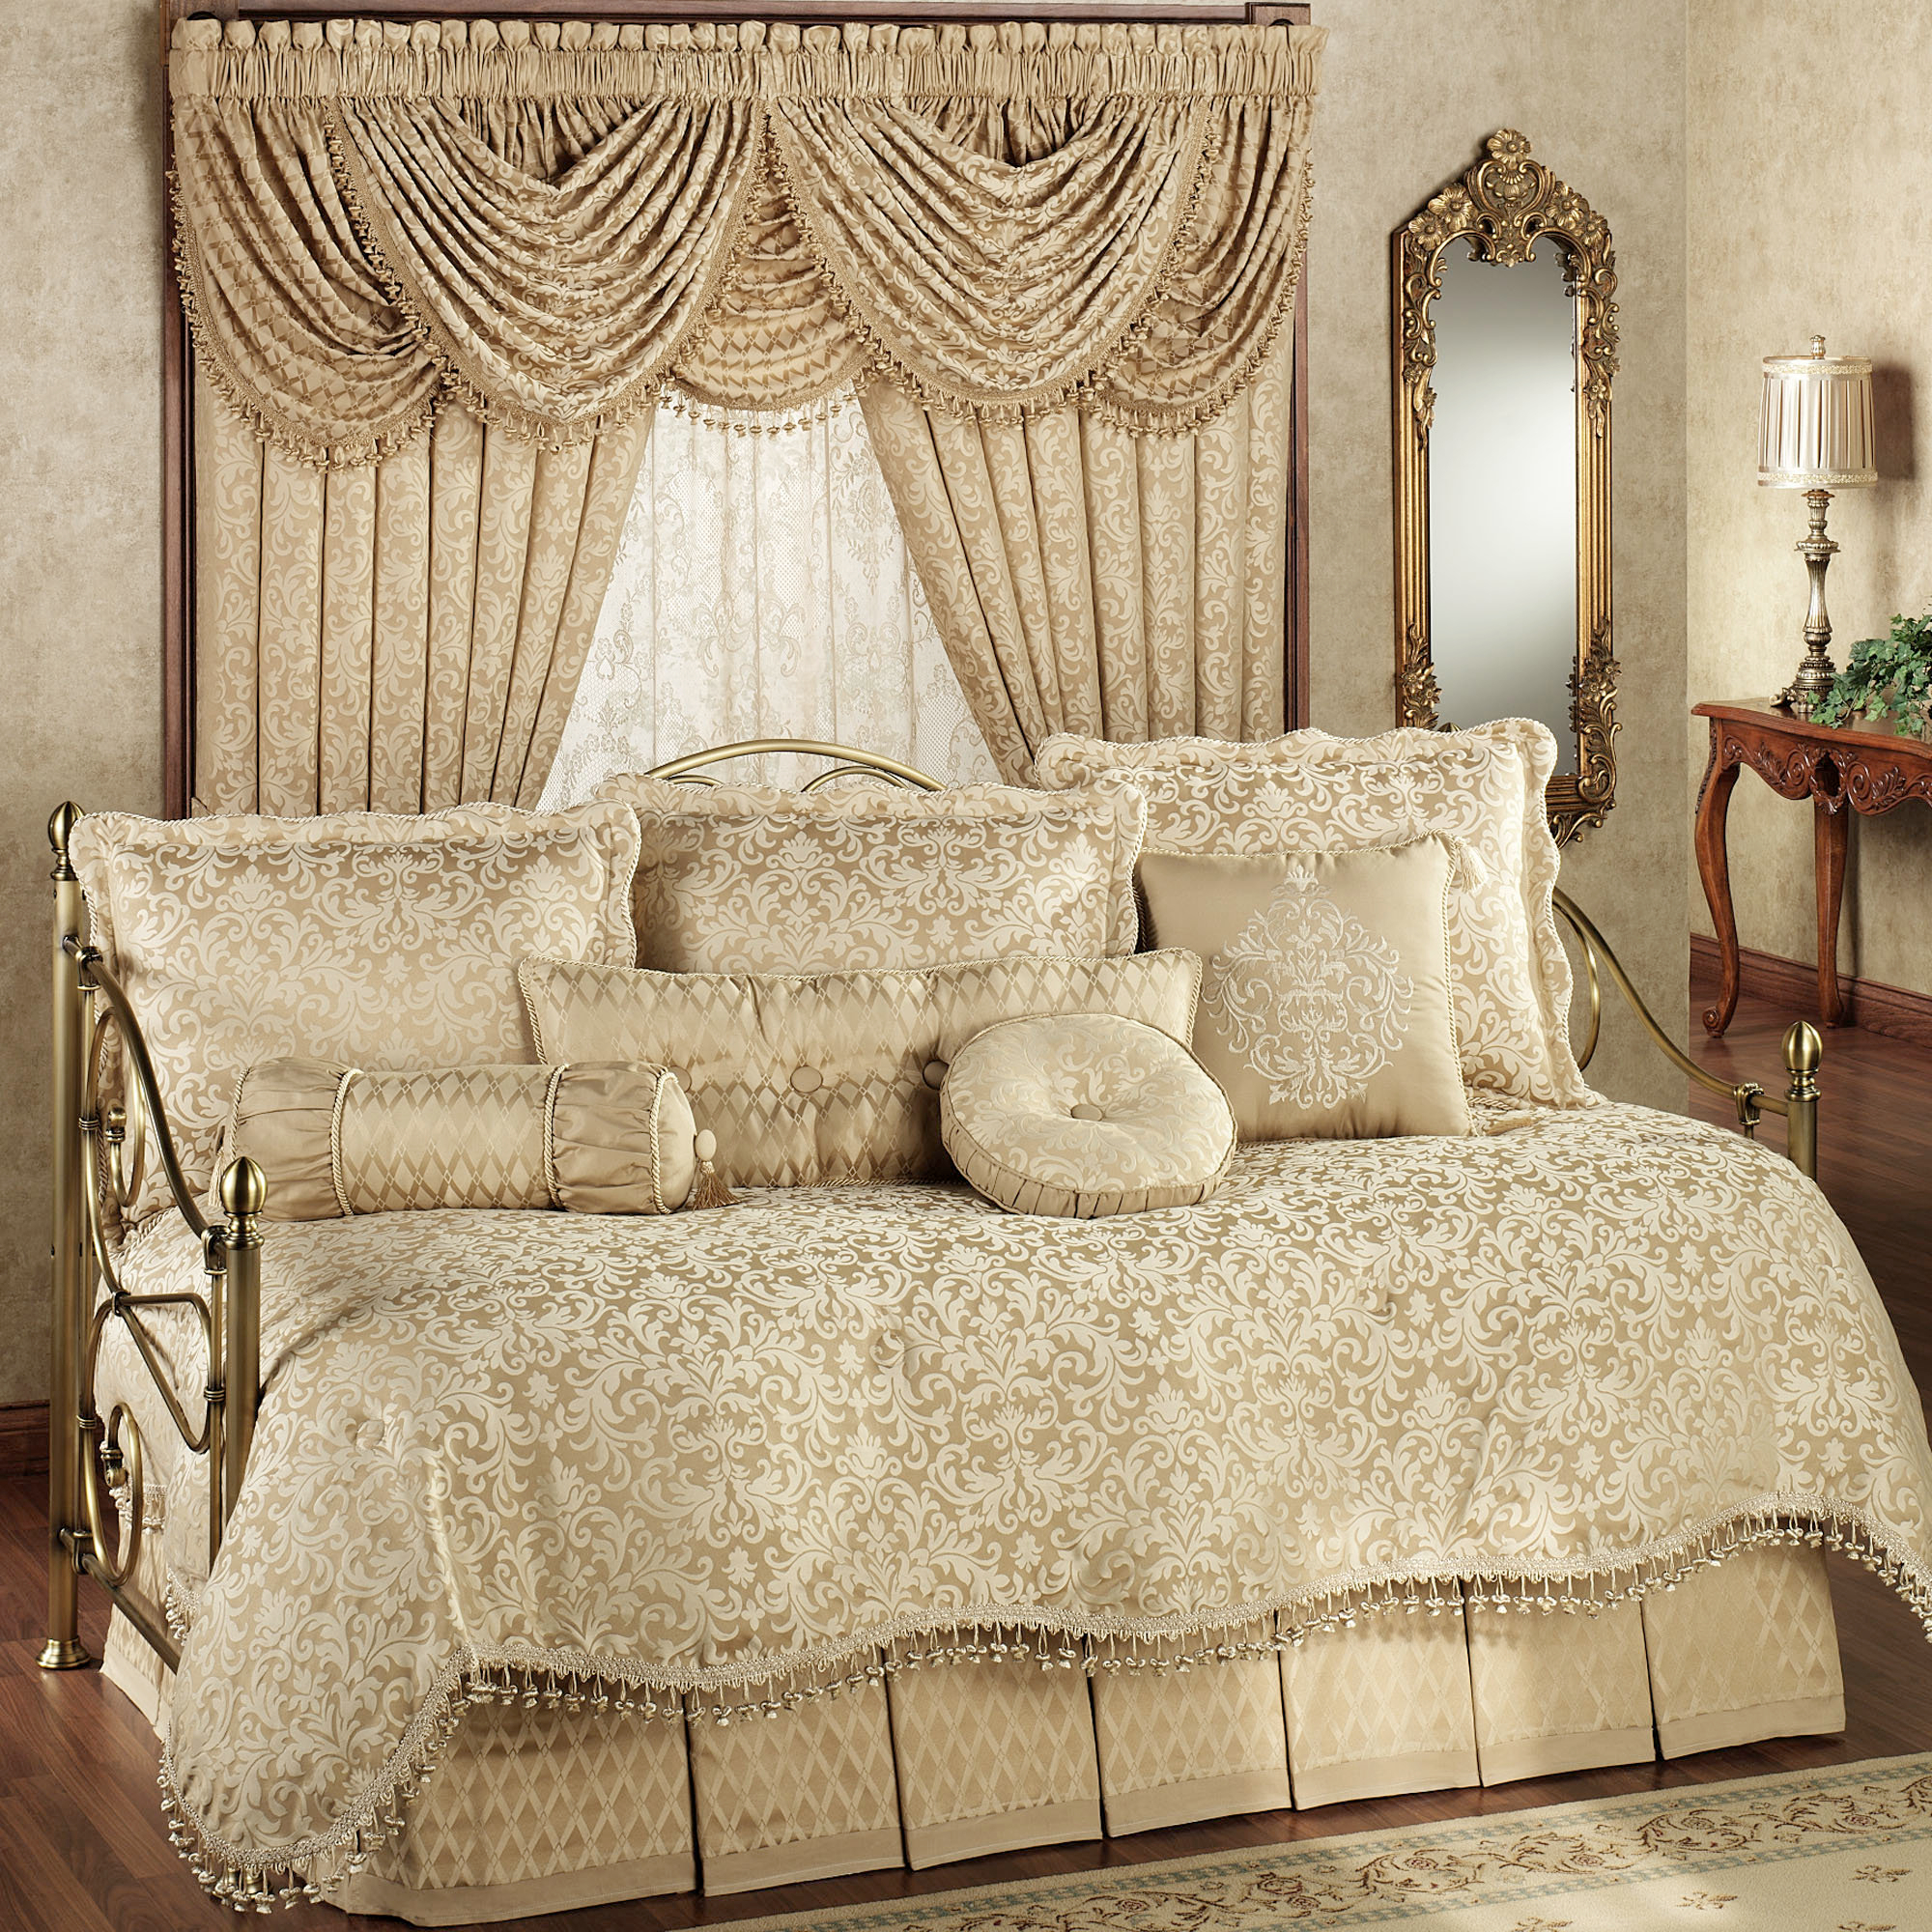 A Stunning Daybed Bedding Set That Is Made Of Only The Finest Quality  Materials And Makes For The Sublime Addition For Your Household To Ooze  Style And ...